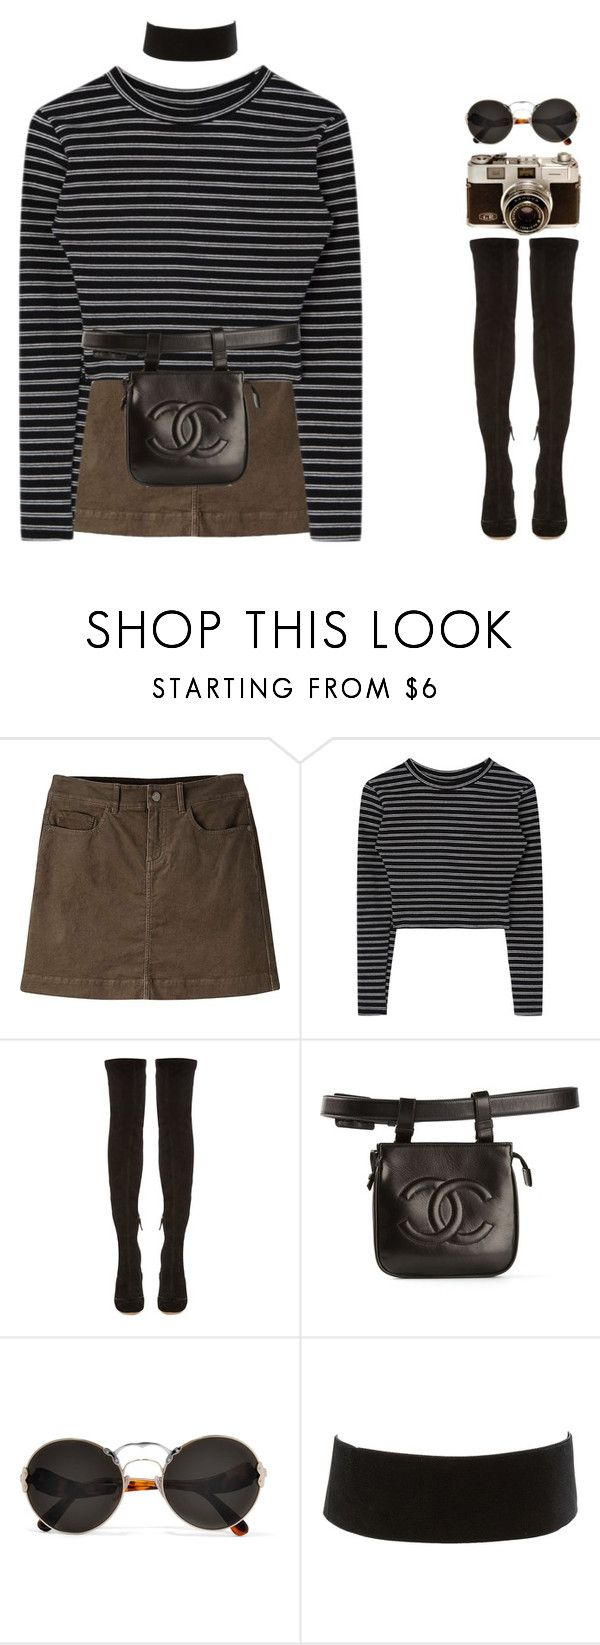 """6017"" by tiffanyelinor ❤ liked on Polyvore featuring Mountain Khakis, Nicholas Kirkwood, Chanel, Prada and Charlotte Russe"